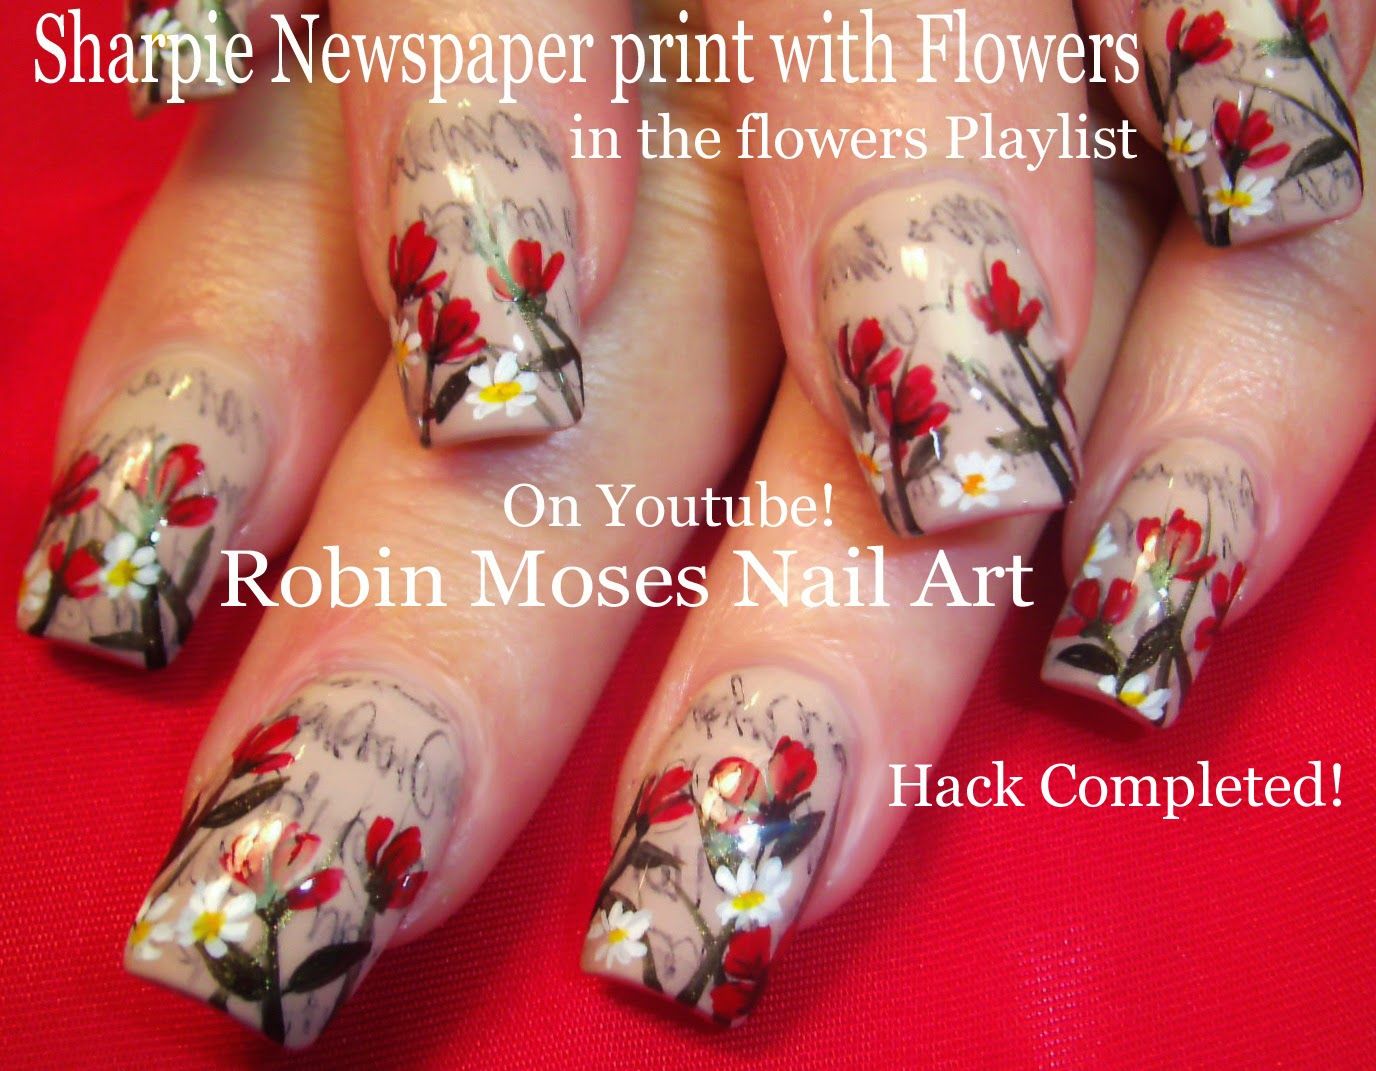 Robin Moses Nail Art: Sharpie Nail Art Hack! Easy Nail Art